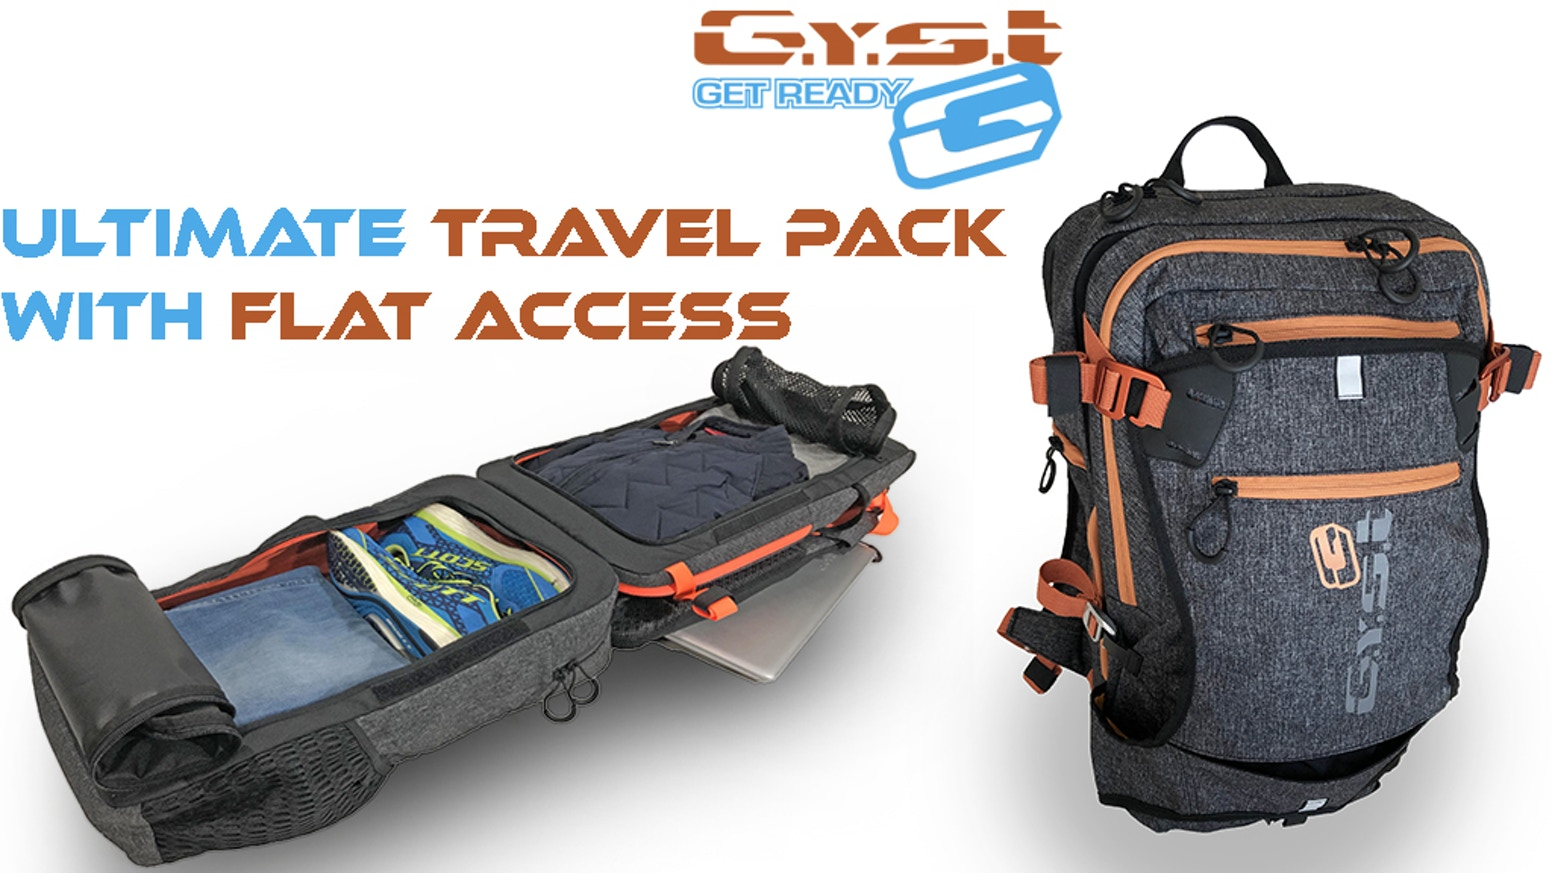 An extremely durable flat access backpack, with integrated walk-in mat.  Discover how the GYST magnetic bag opens flat like a luggage.